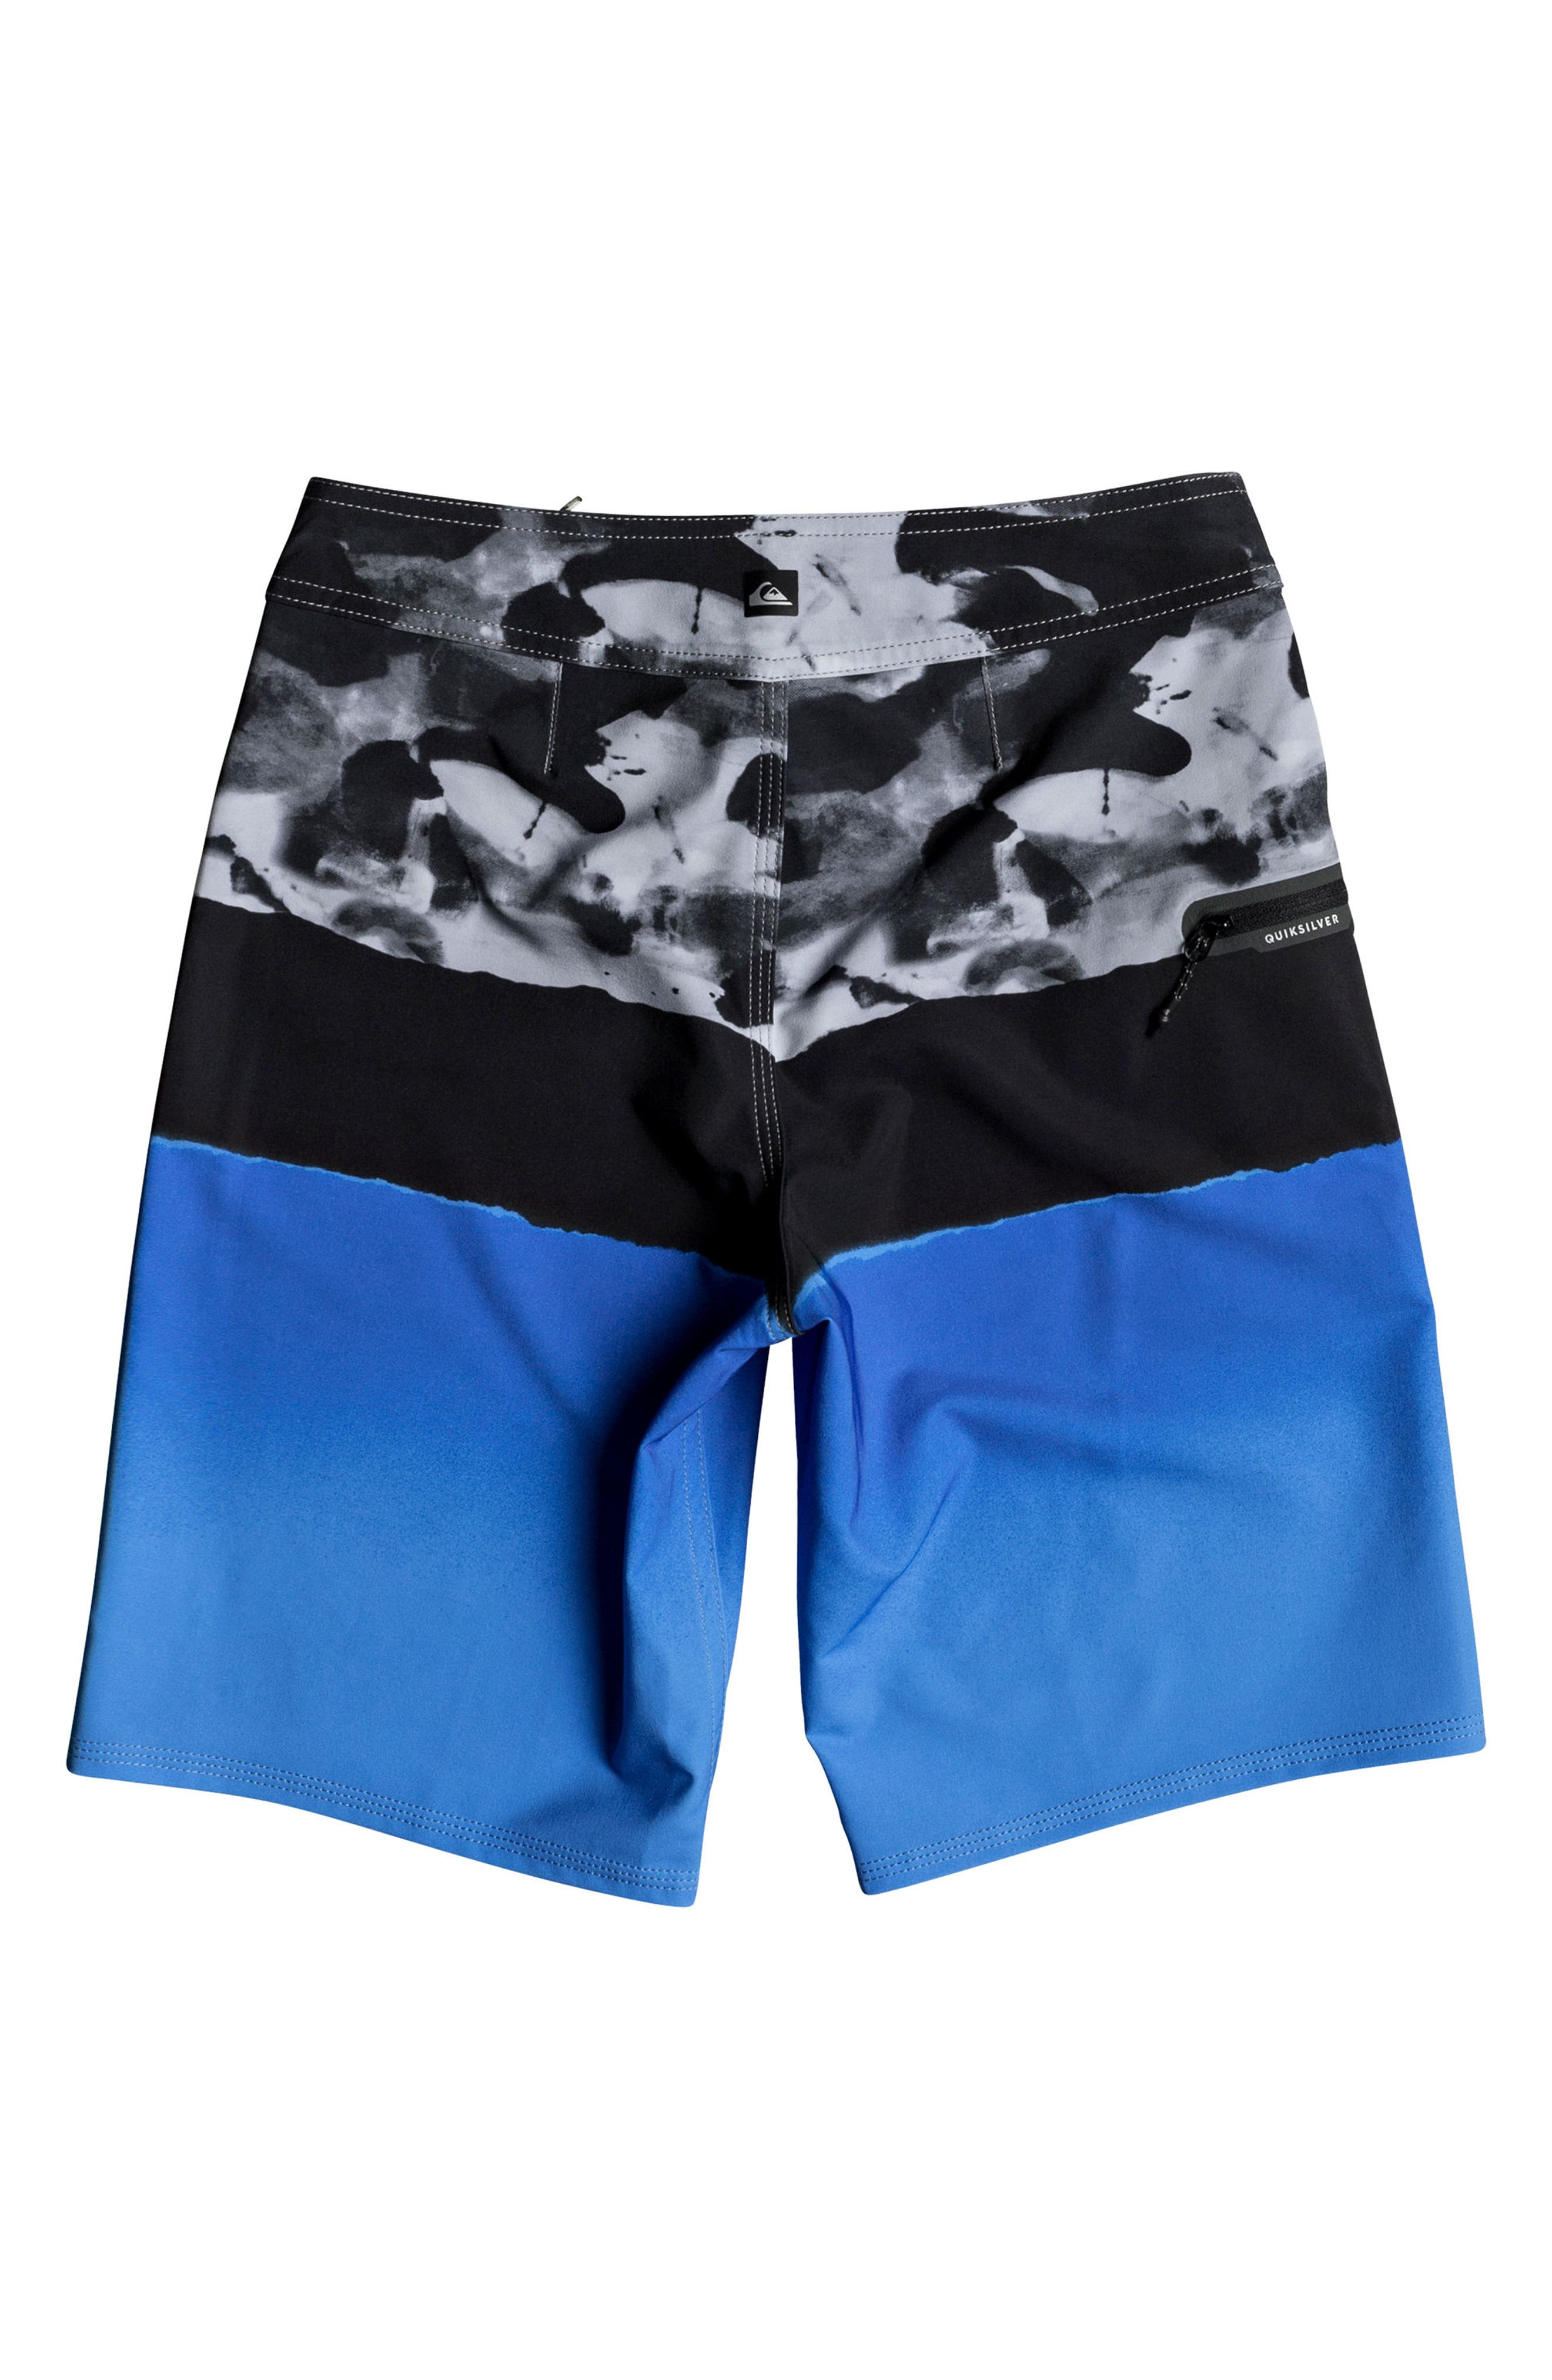 Blocked Resin Camo Board Shorts,                             Alternate thumbnail 2, color,                             Electric Blue